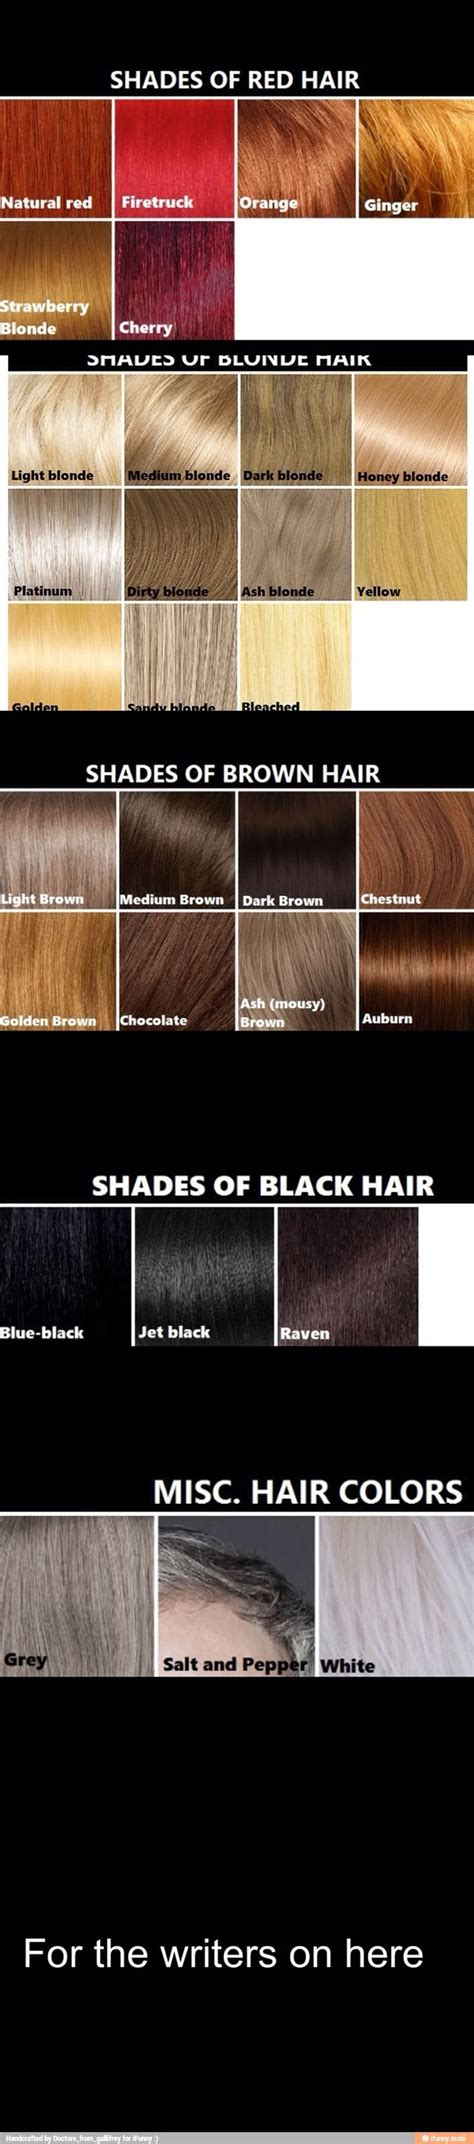 Hair Color Descriptions by 25 Best Ideas About Writing Characters On